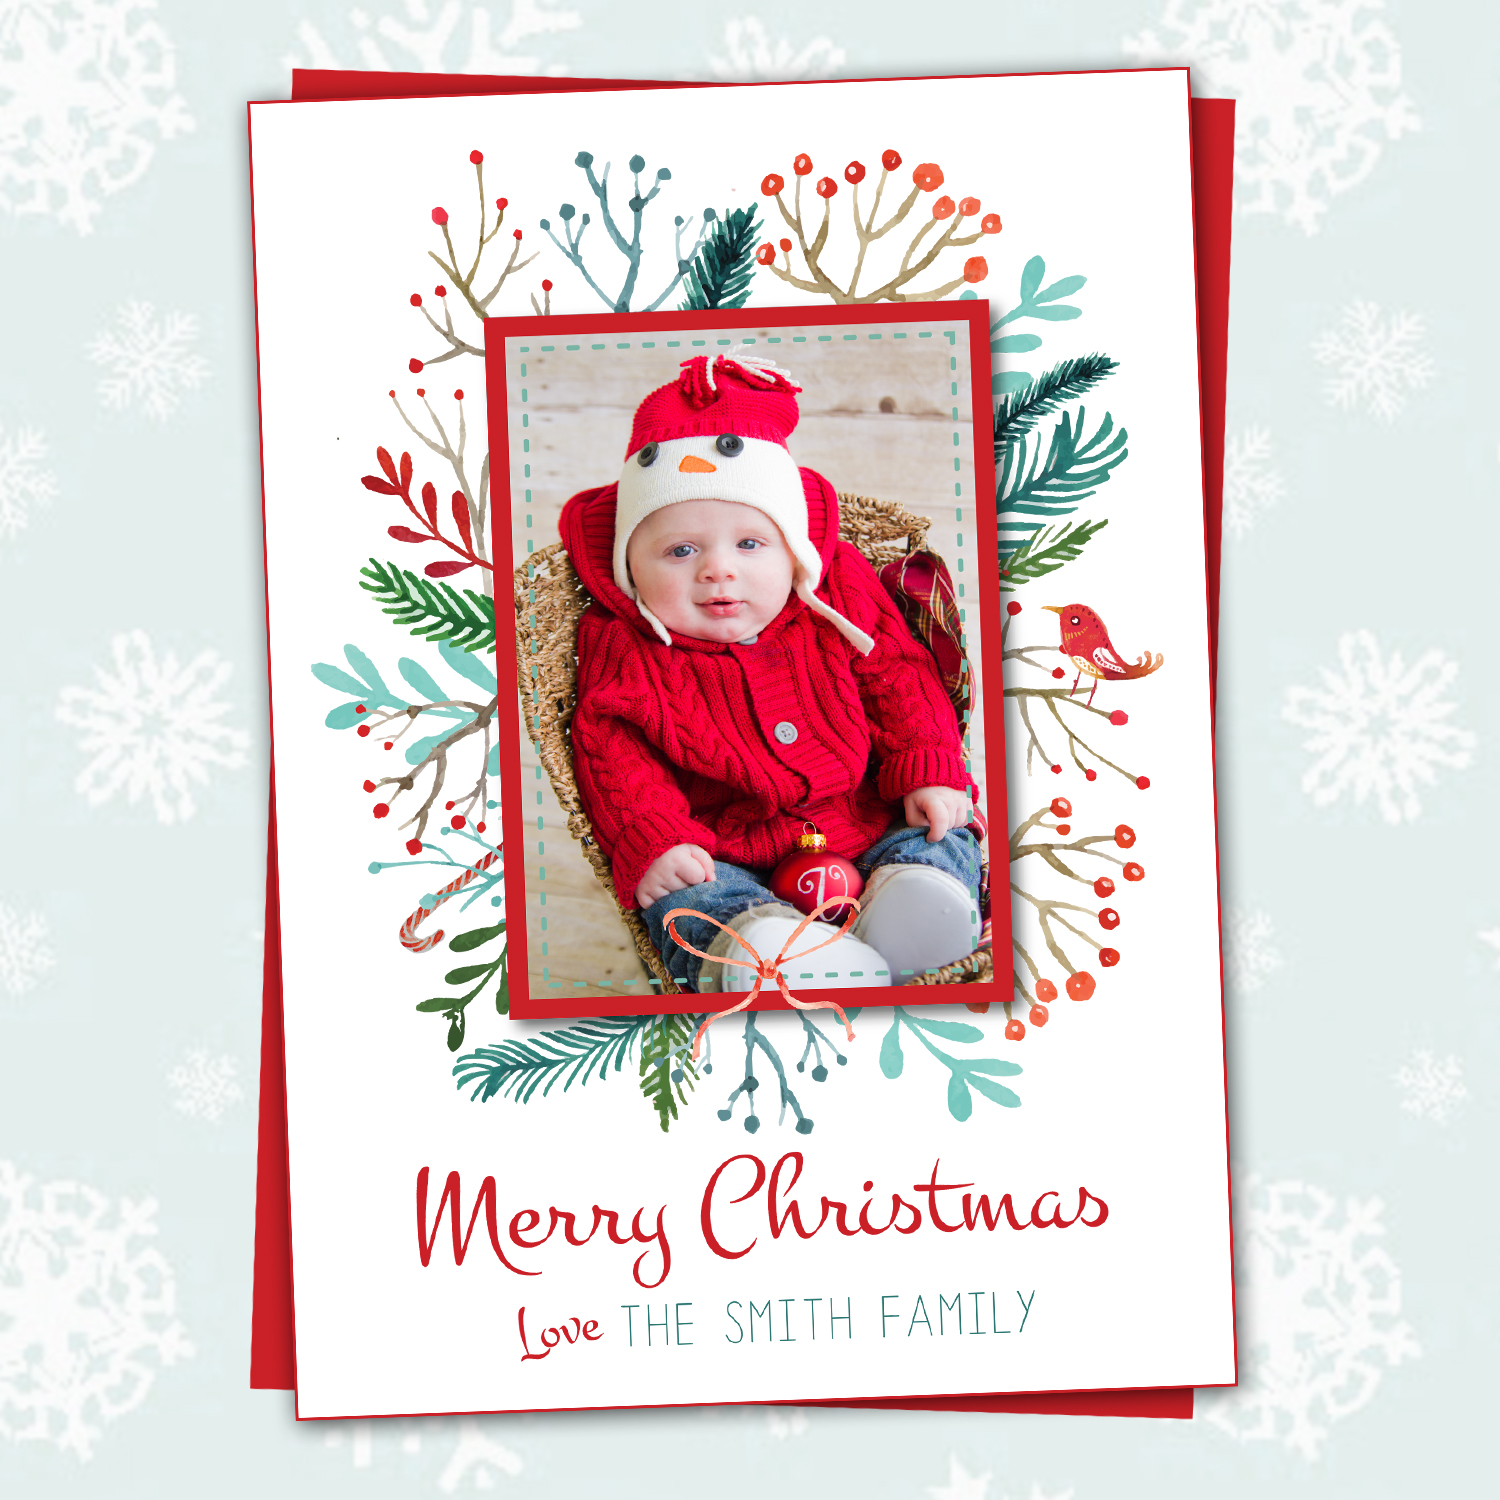 A Wonderful Tradition Holiday Greeting Cards Printing By Penny Lane